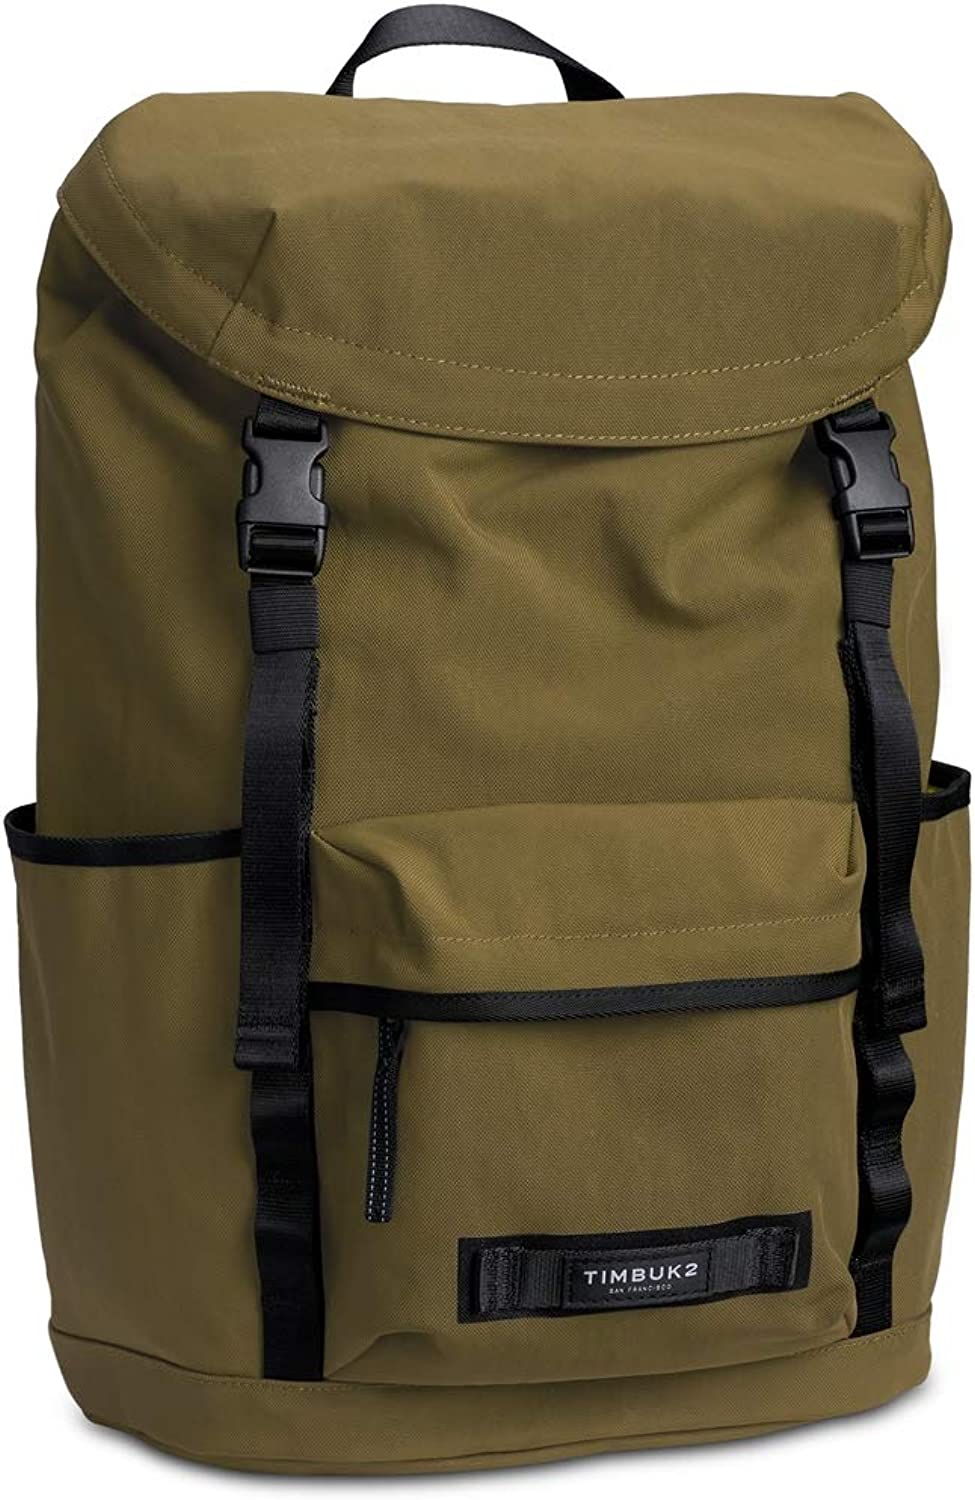 Timbuk2 Lug Launch Laptop Pack